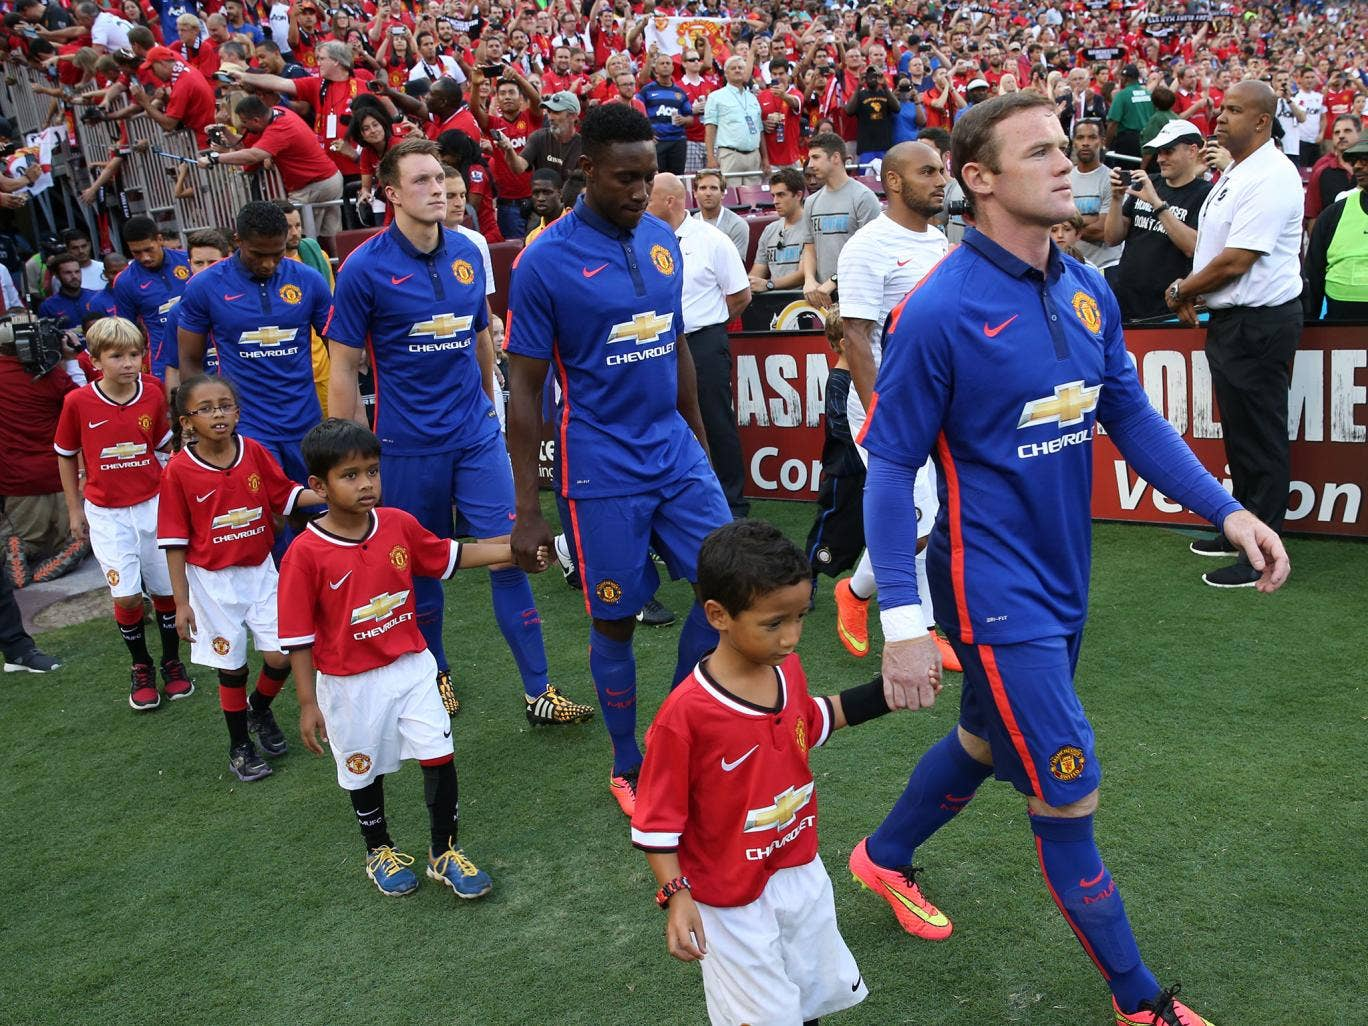 The Manchester United team walk out ahead of the pre-season friendly between Manchester United and Inter Milan at FedExField